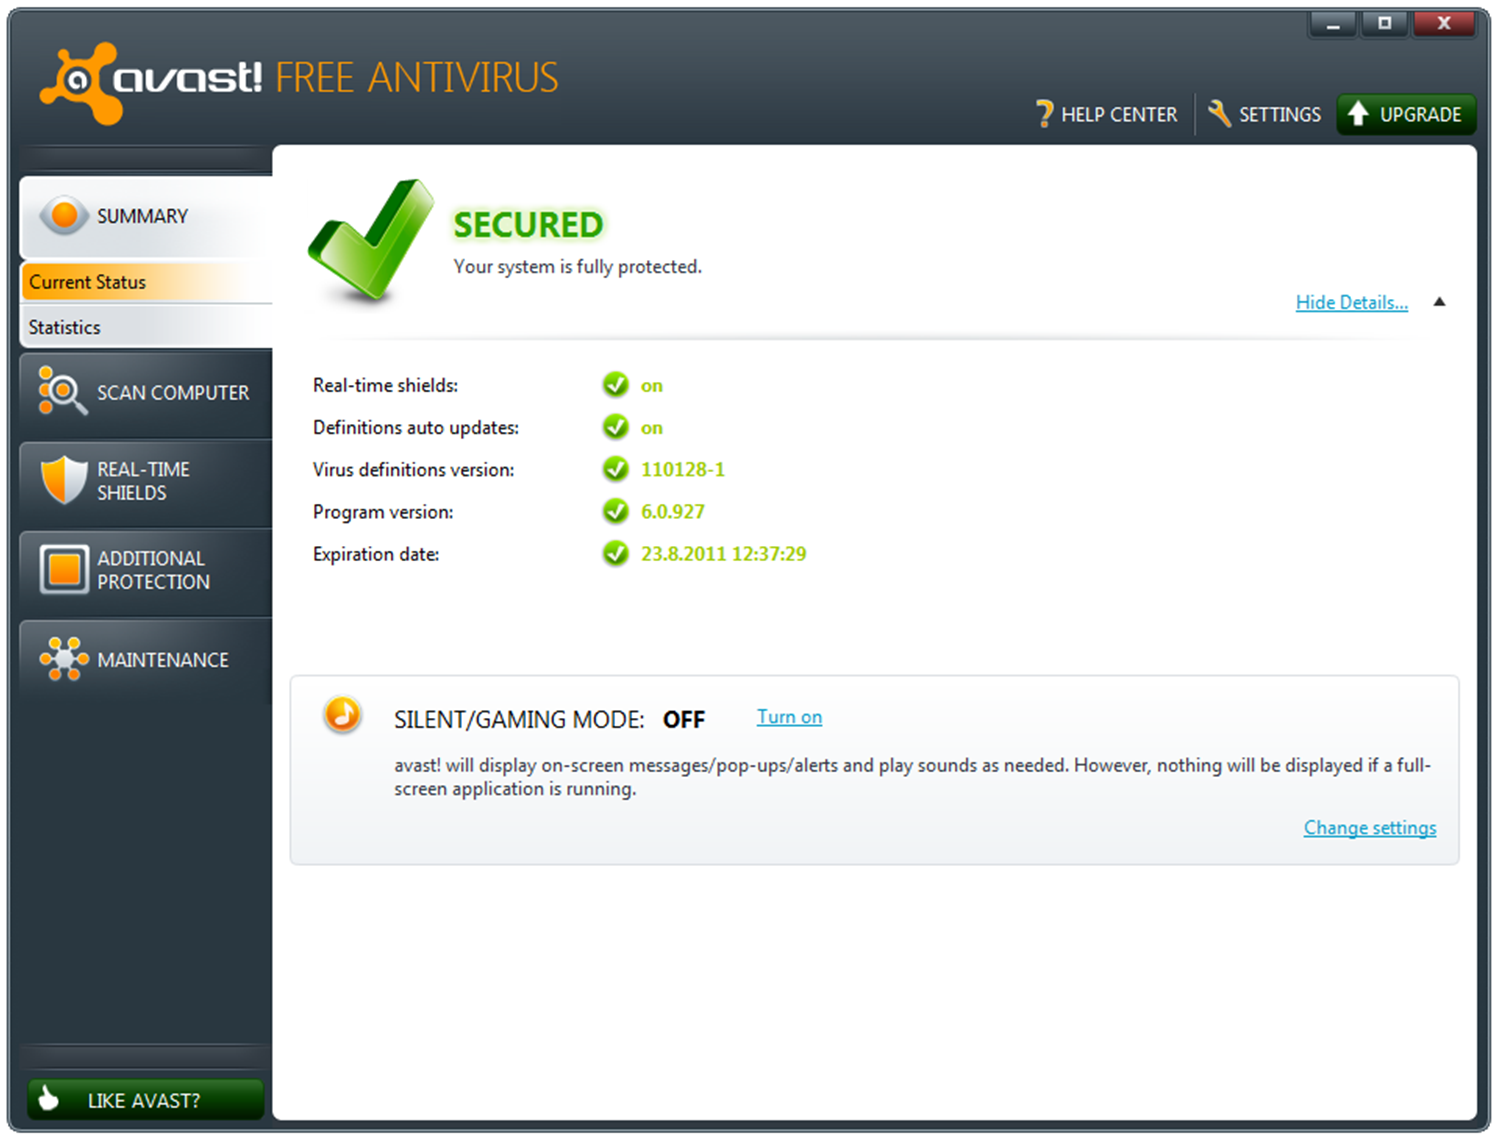 WatFile.com Download Free Free Download Avast Antivirus 8 With 1 Year License Key ~ World Number